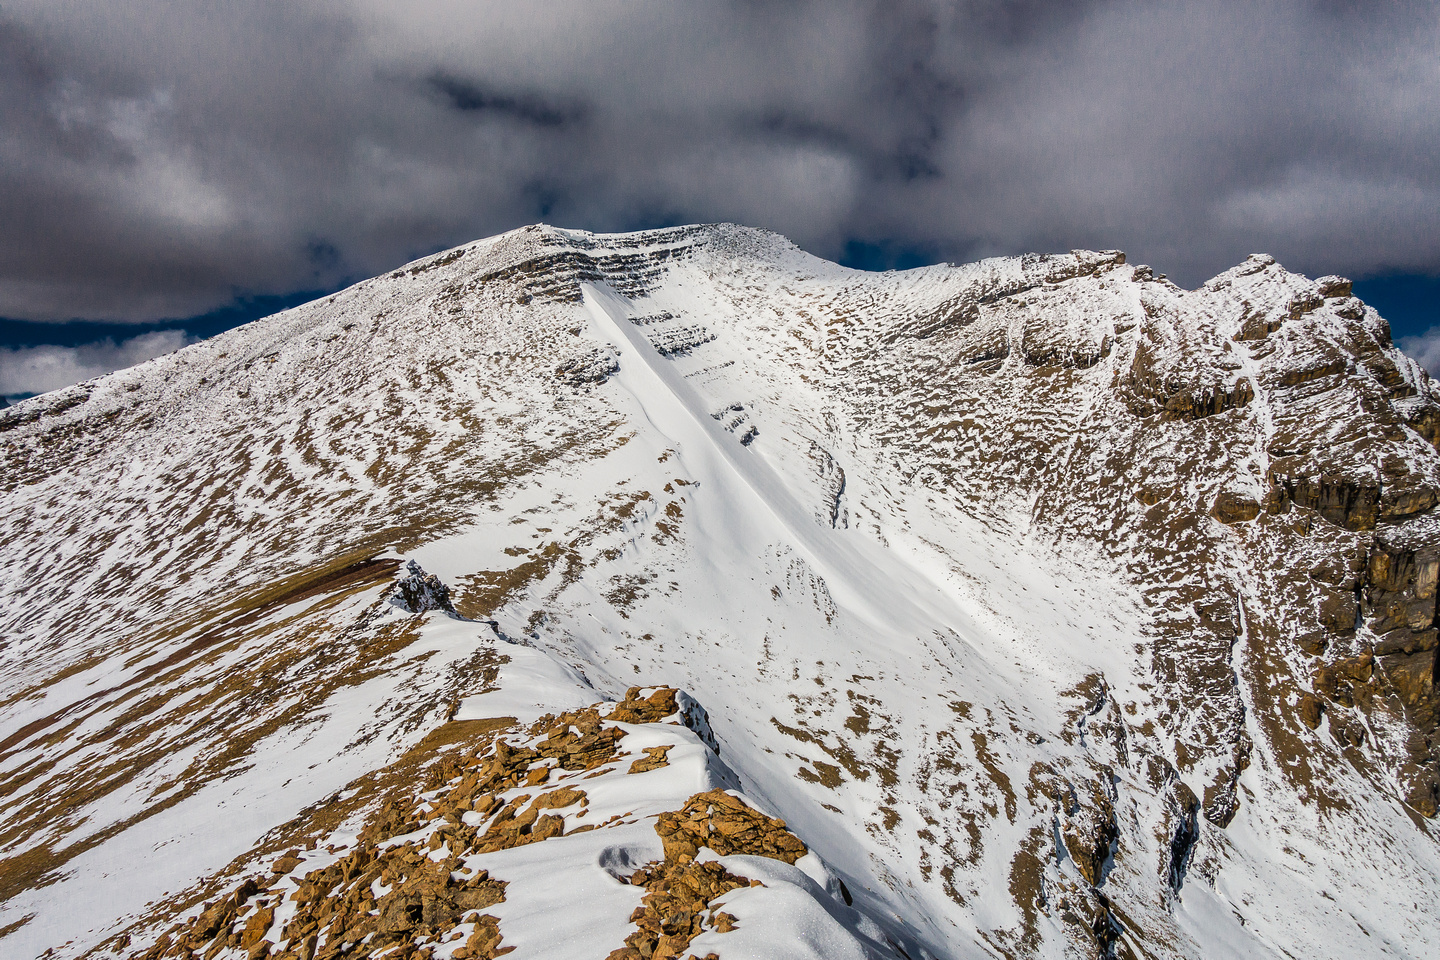 View ahead to the true summit from the false one - note the elevation loss.